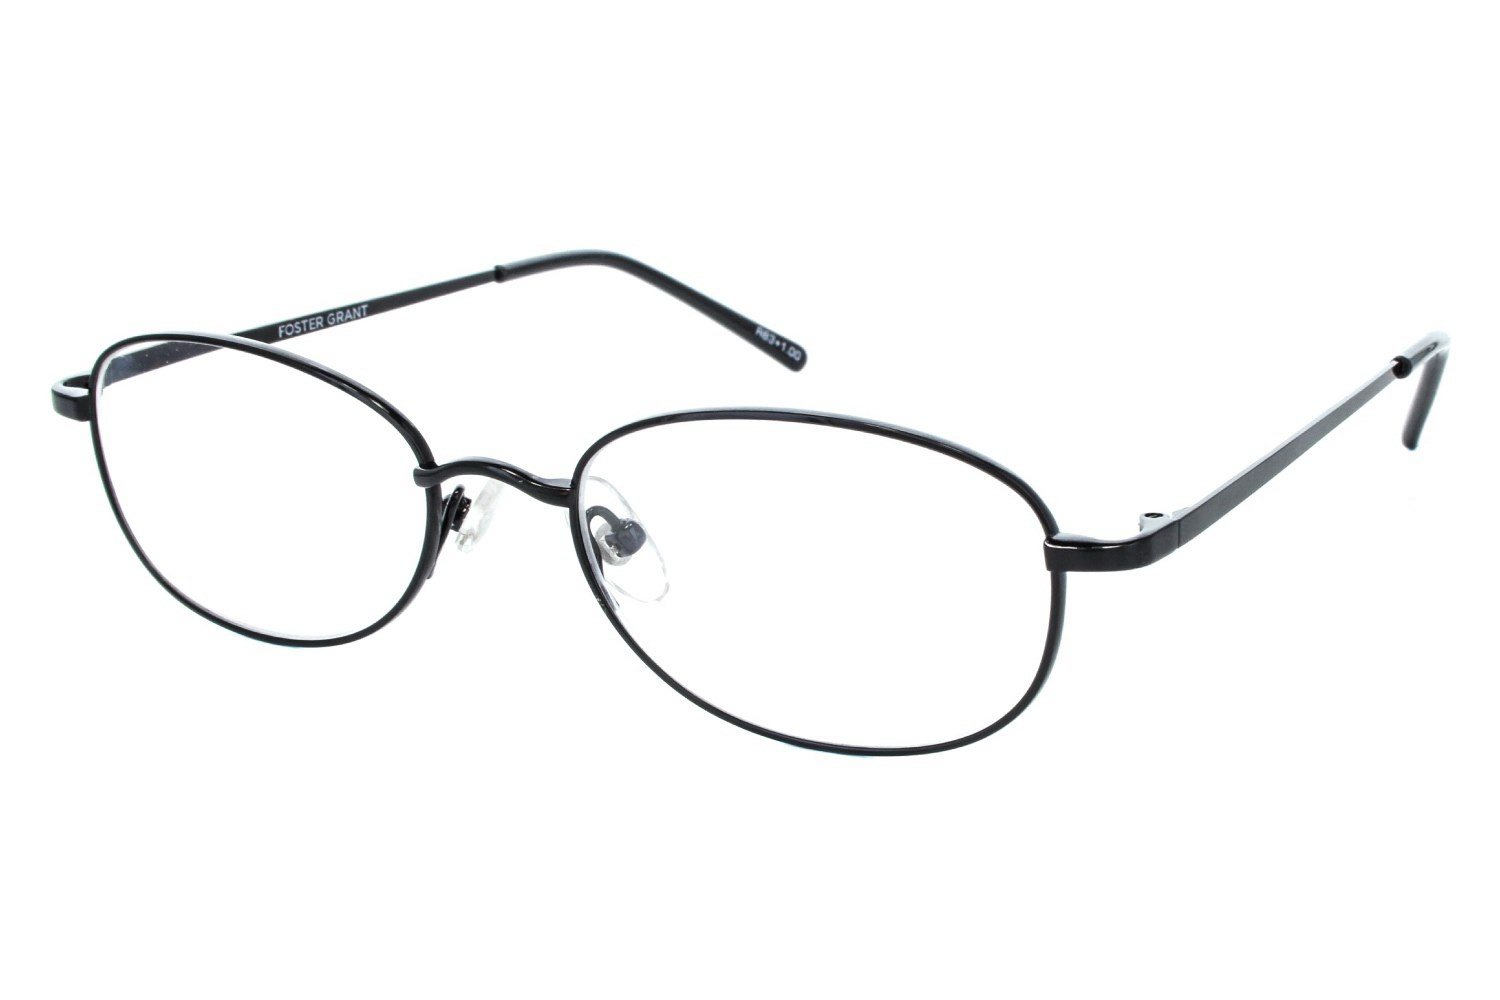 aaae0dd885 Magnivision Tech T4 Reading Glasses - TechnoReadingGlasses